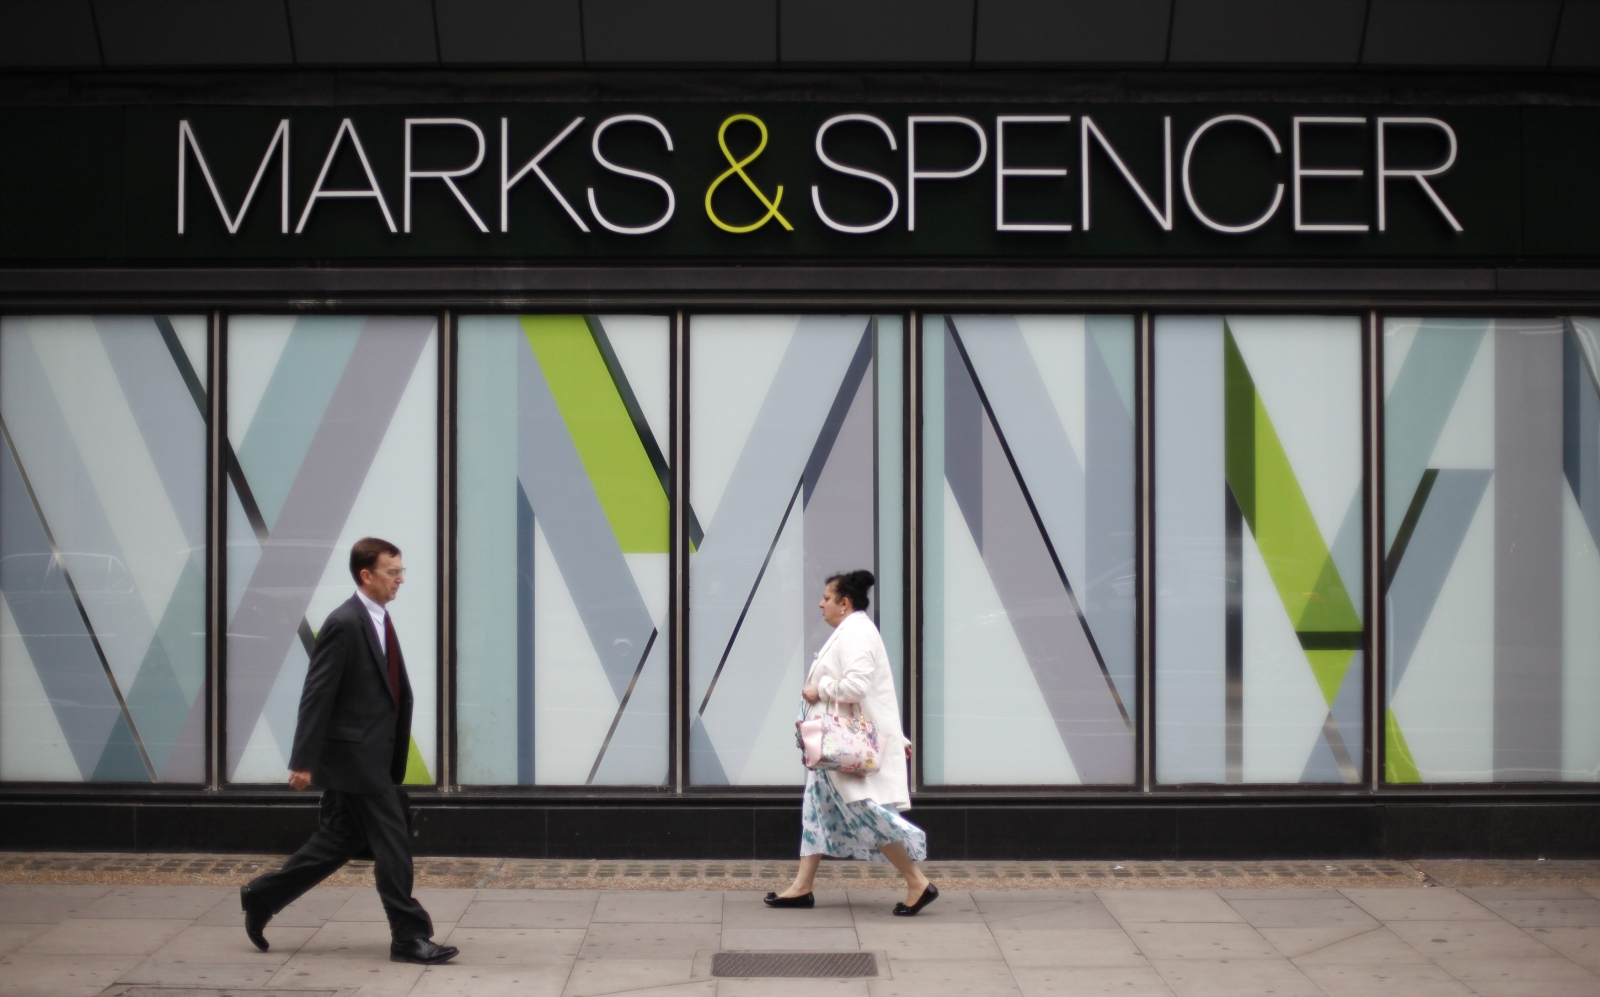 Marks and Spencer (M&S) cuts bonus of its chief executive Steve Rowe and former boss Marc Bolland